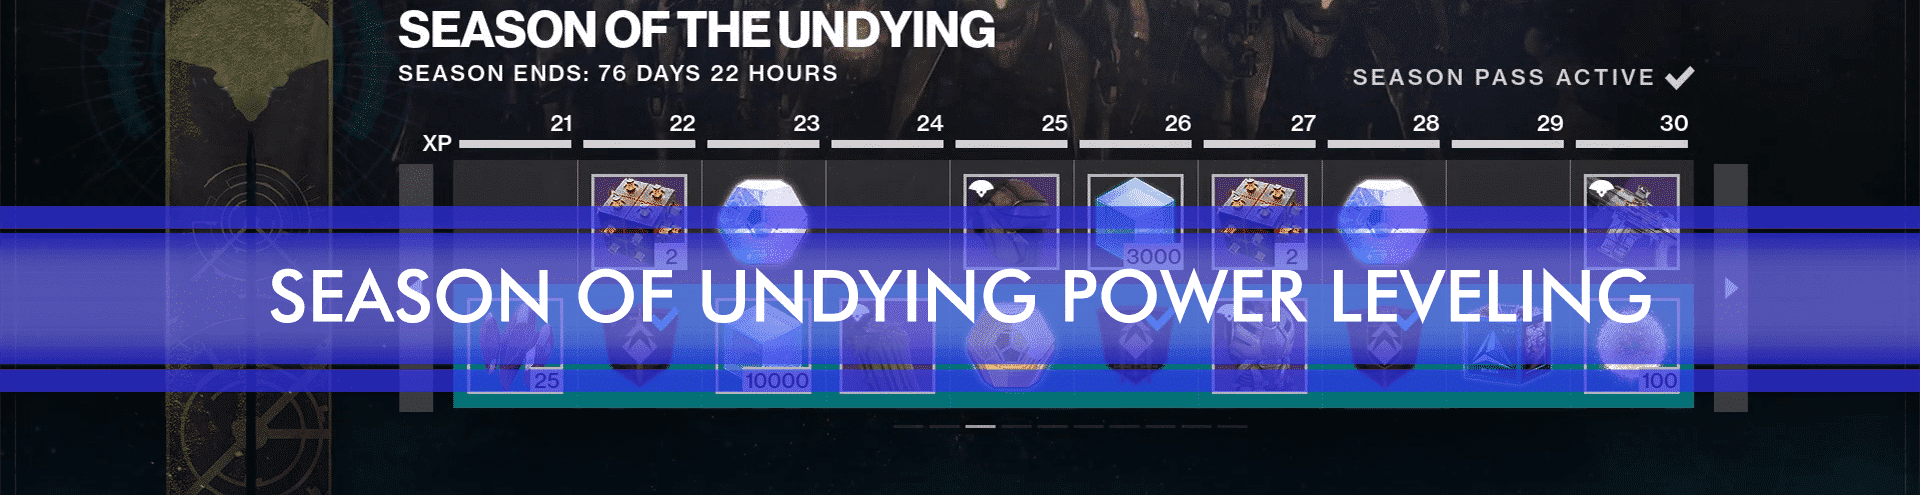 season of undying power level 1